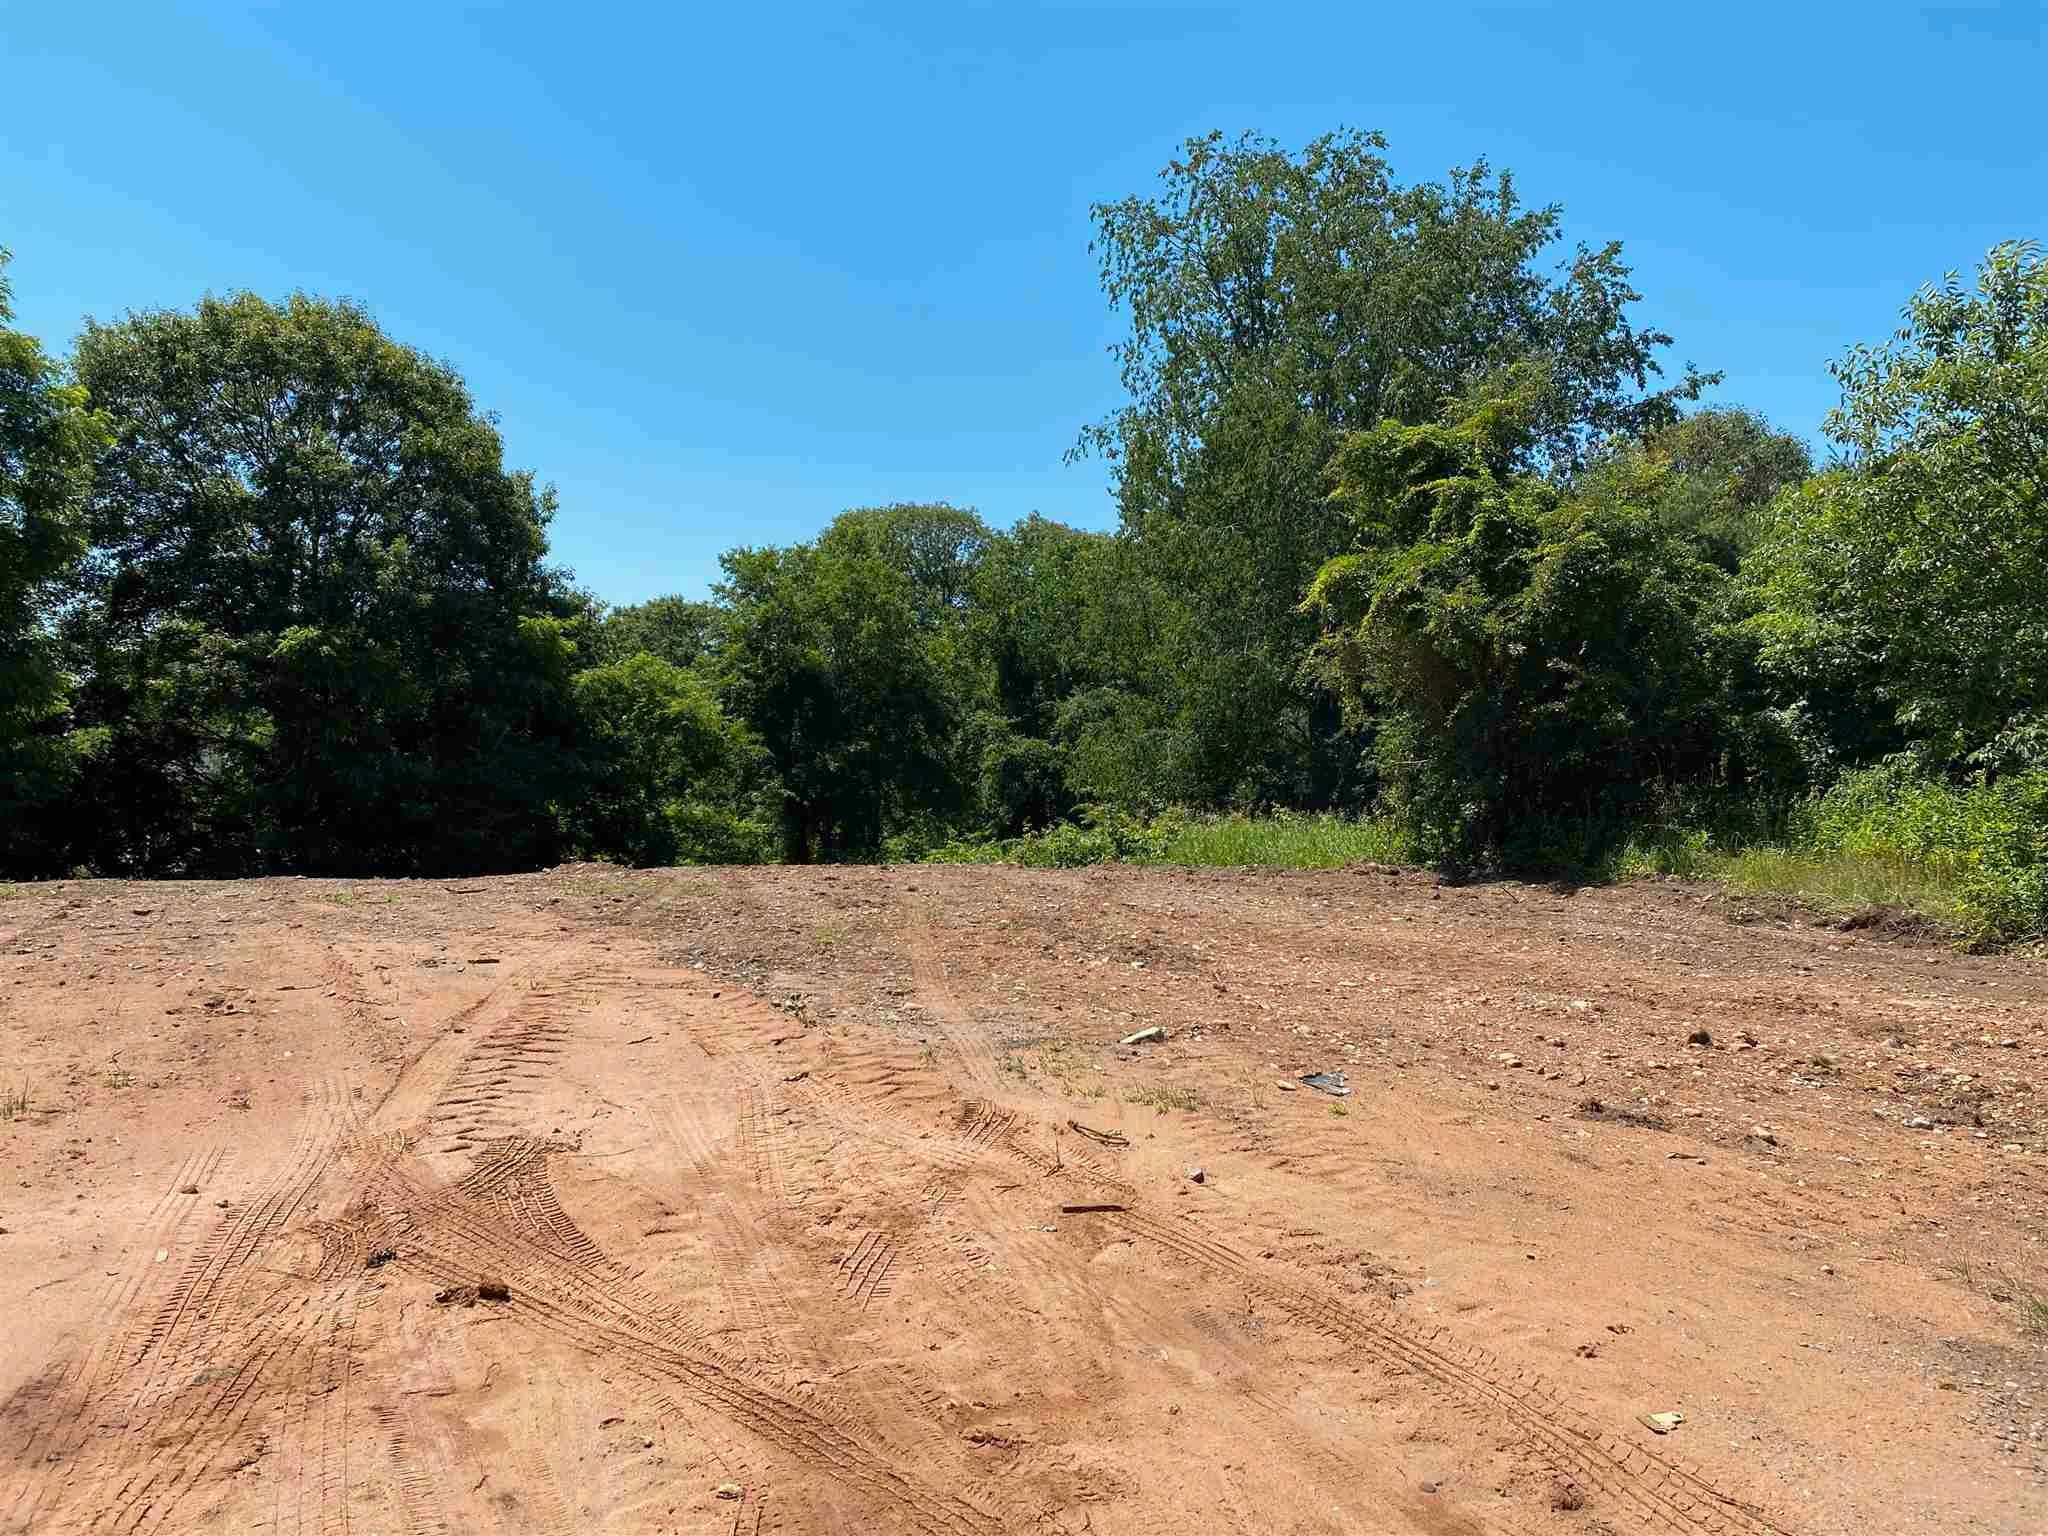 Main Photo: Lot 11 16 REDDEN Avenue in Kentville: 404-Kings County Vacant Land for sale (Annapolis Valley)  : MLS®# 202117380